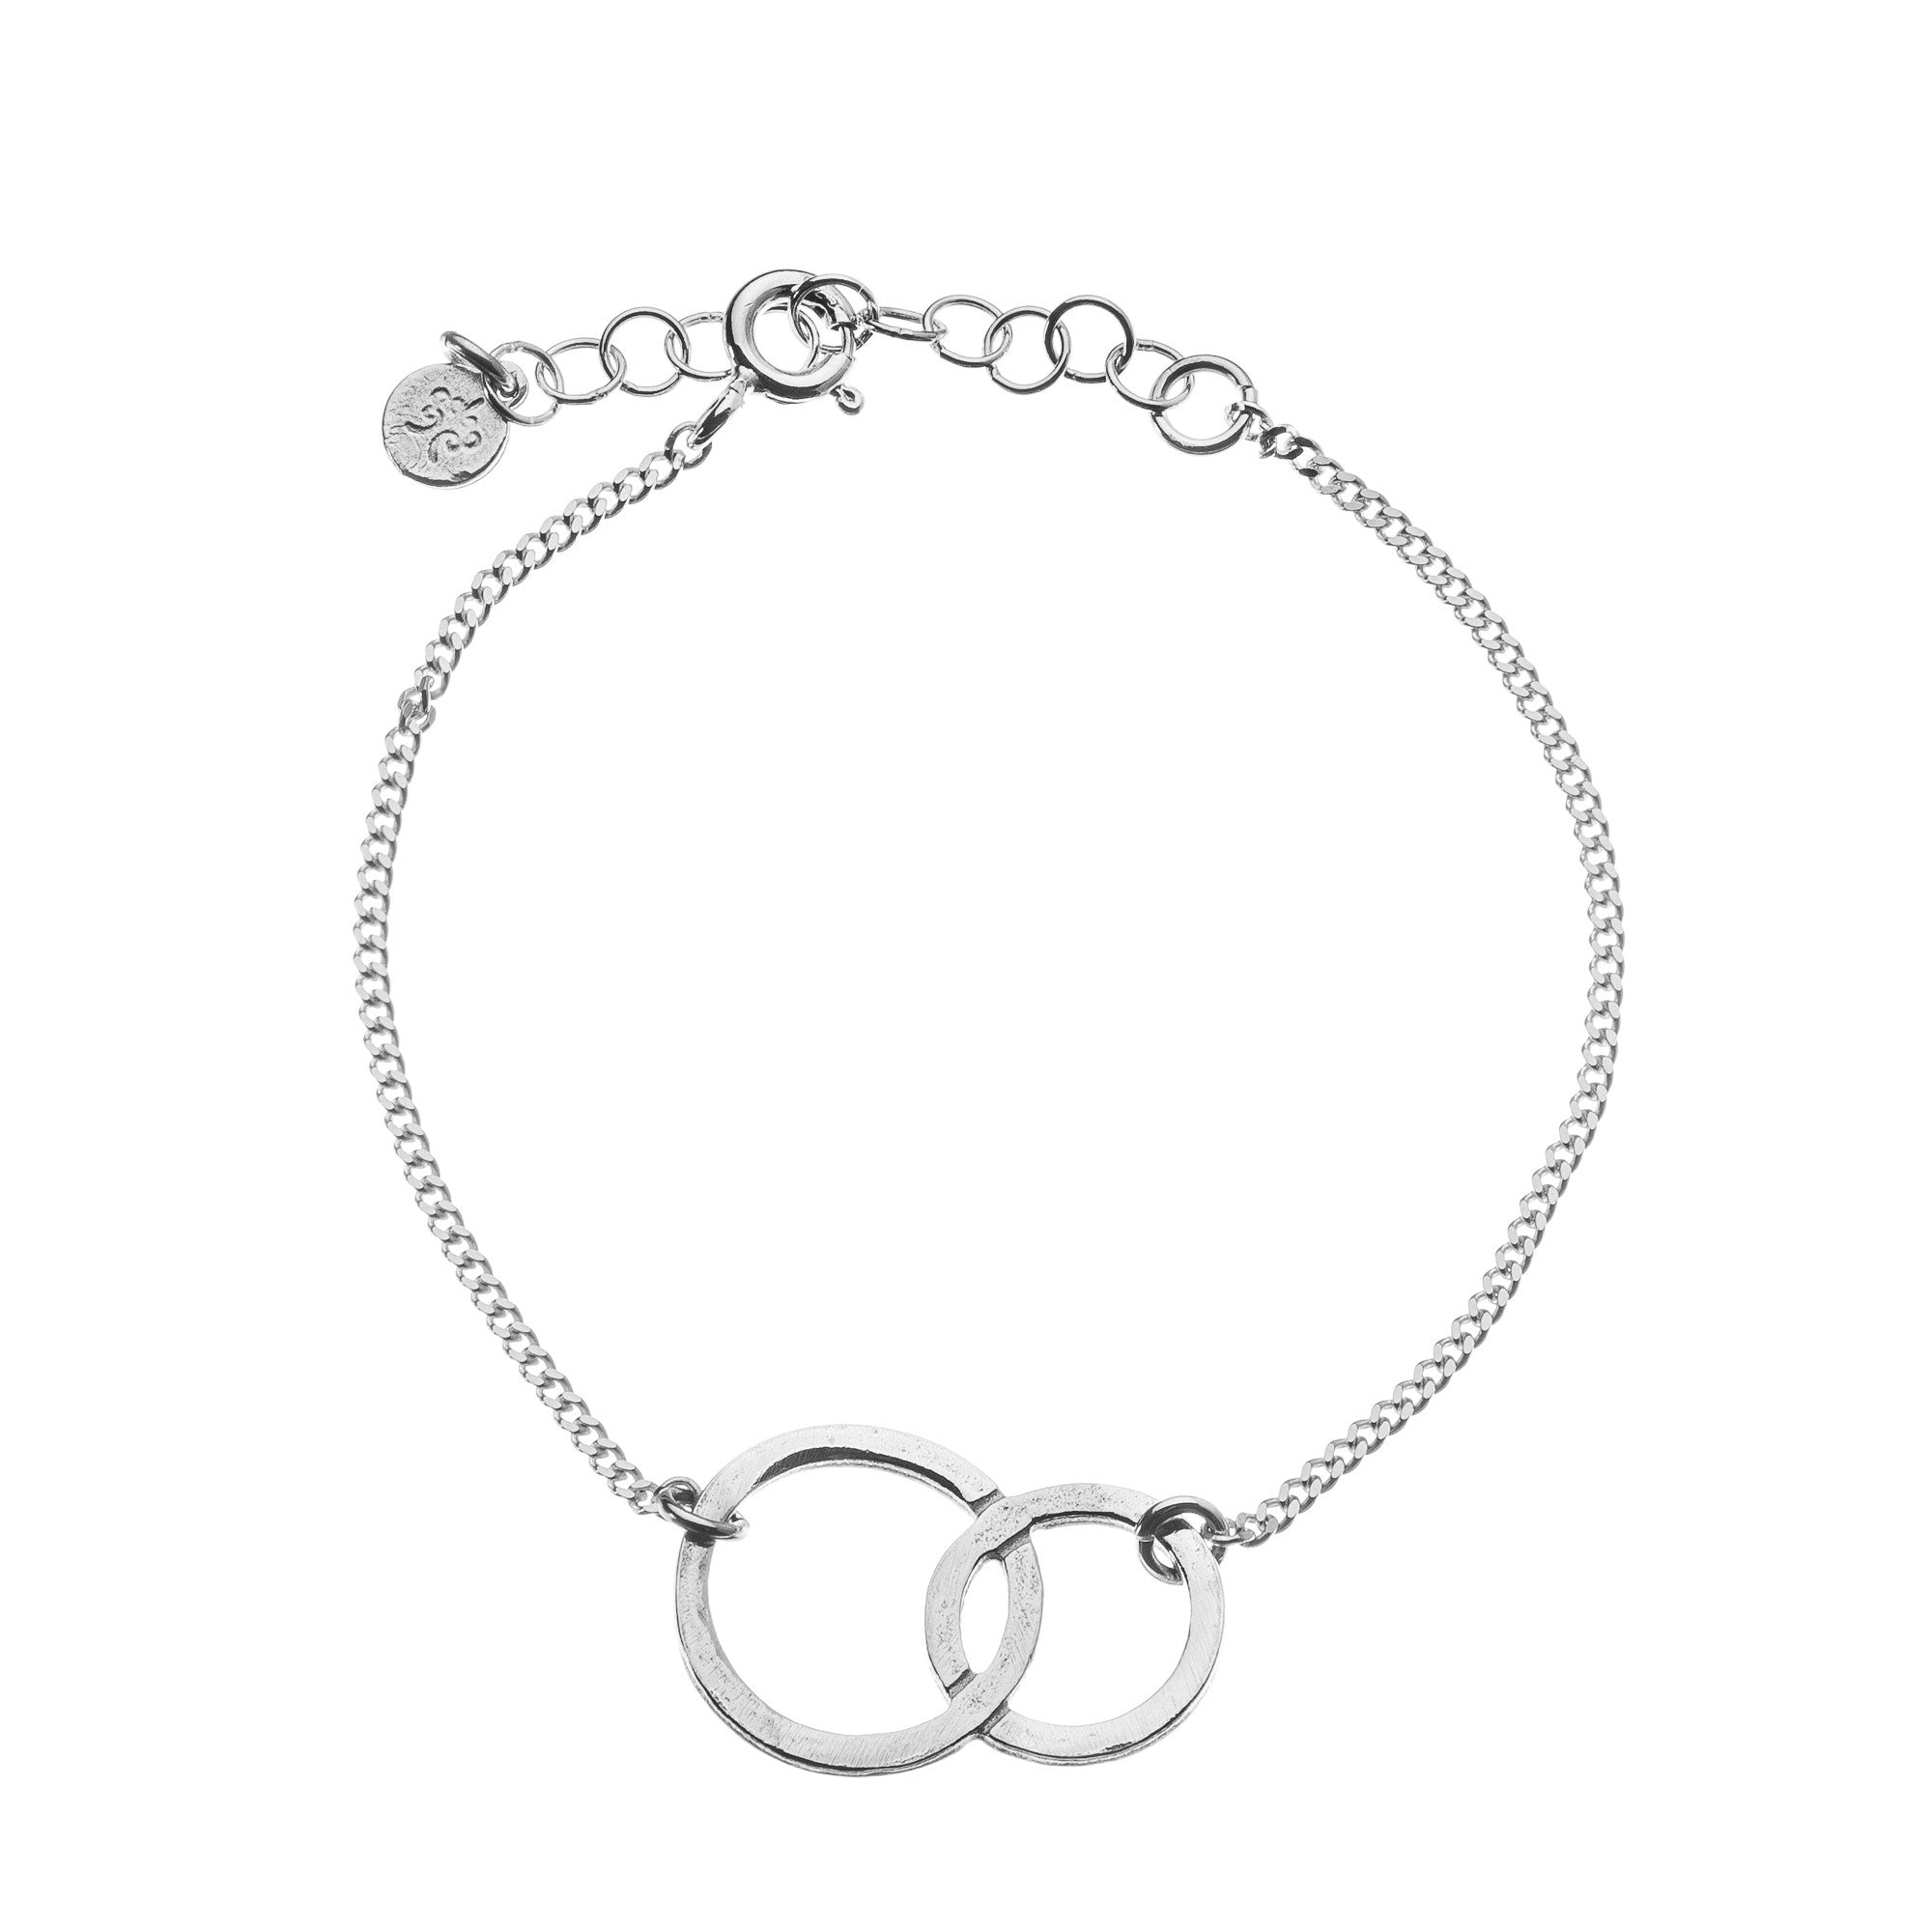 thick bracelets girl bangle silver lock baby product sterling pb shiny bracelet details plain products chain